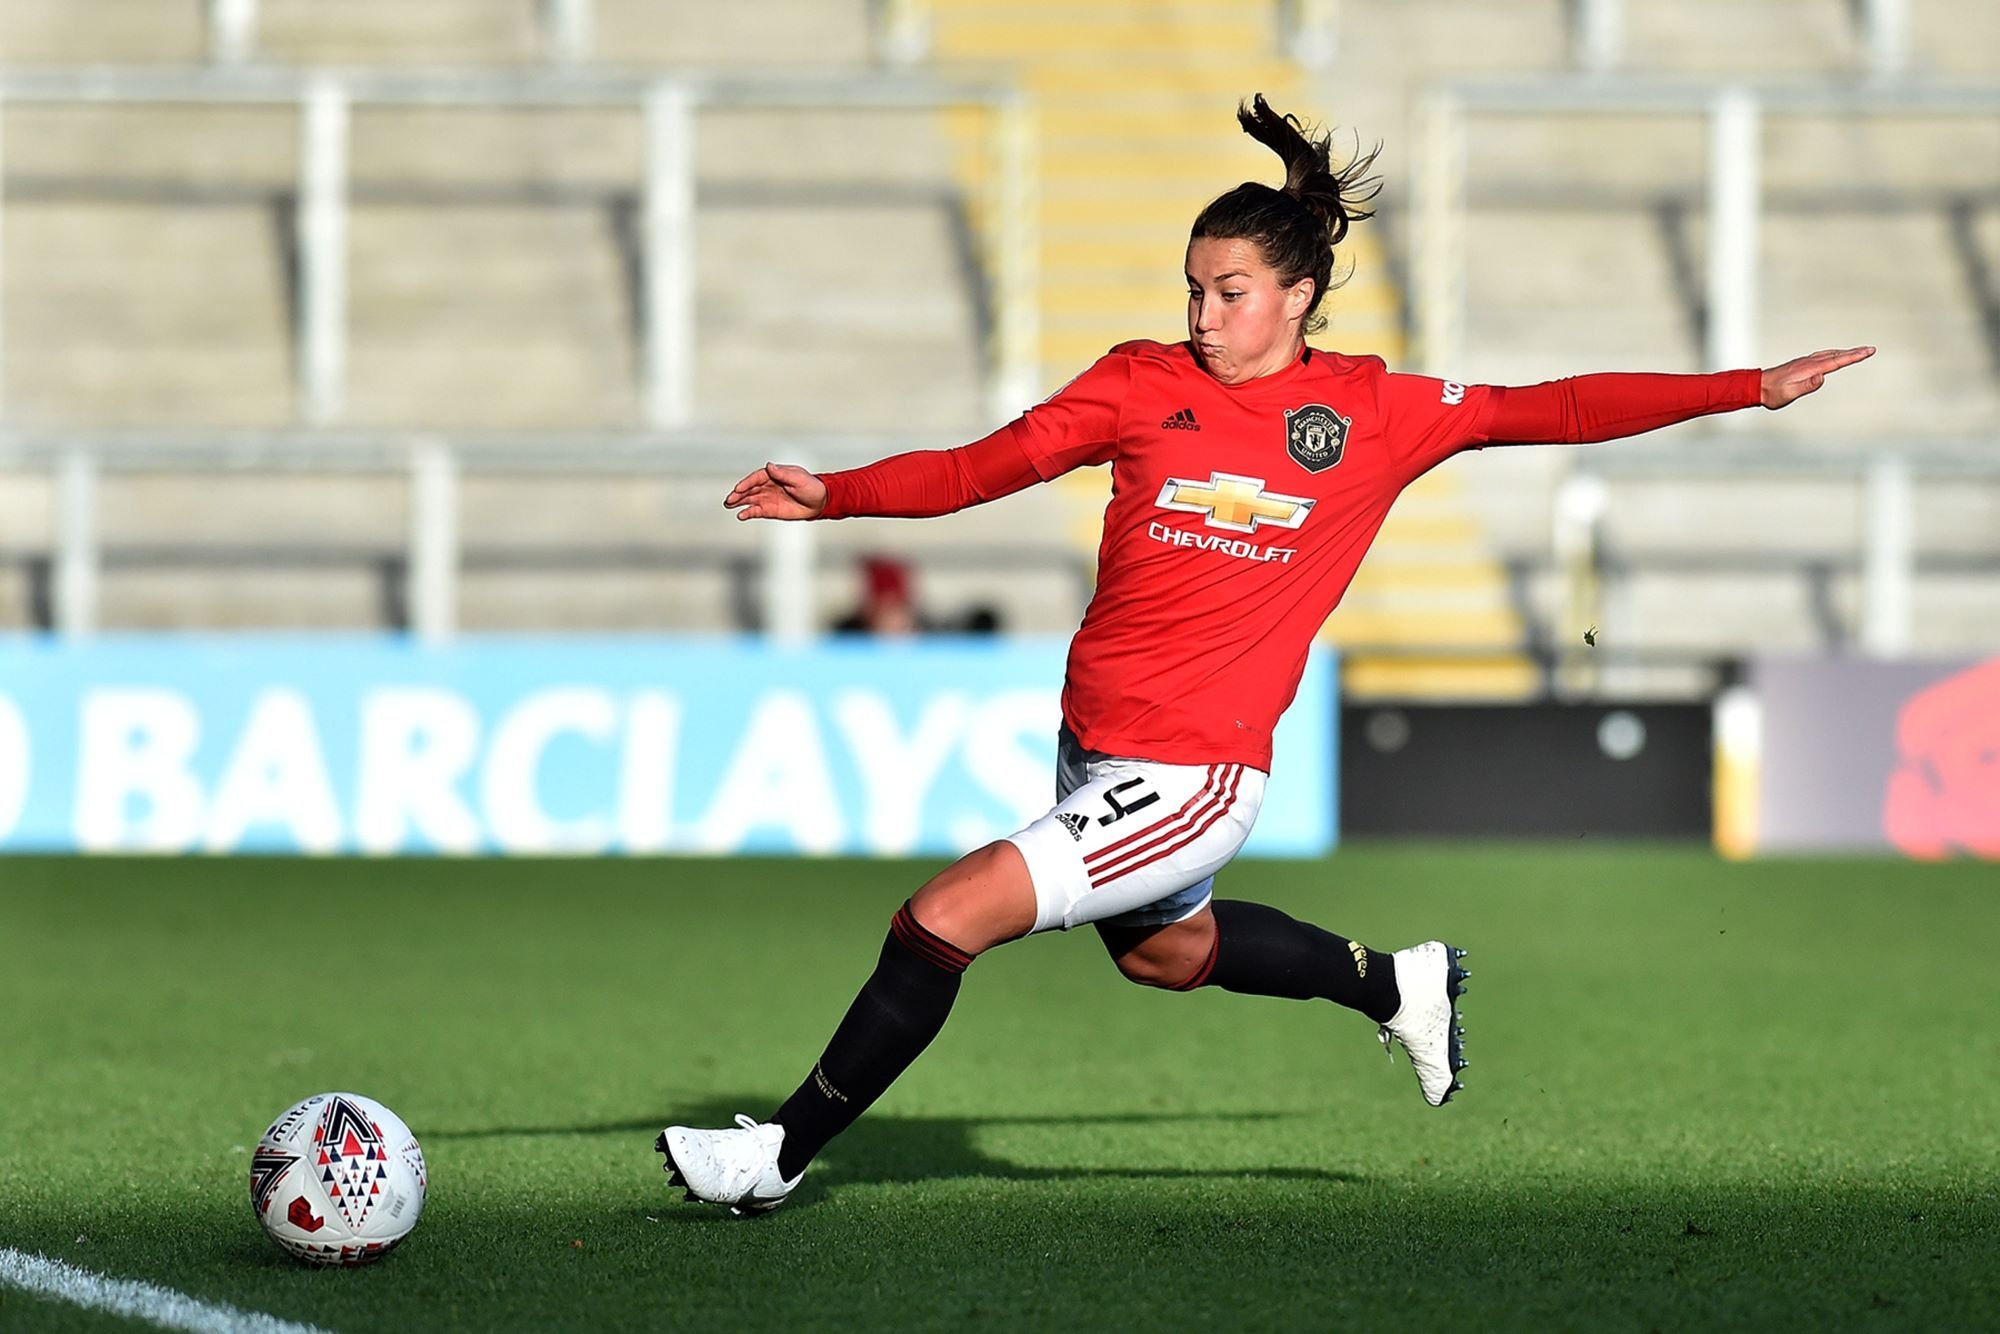 United's Amy Turner re-signs for WSL club